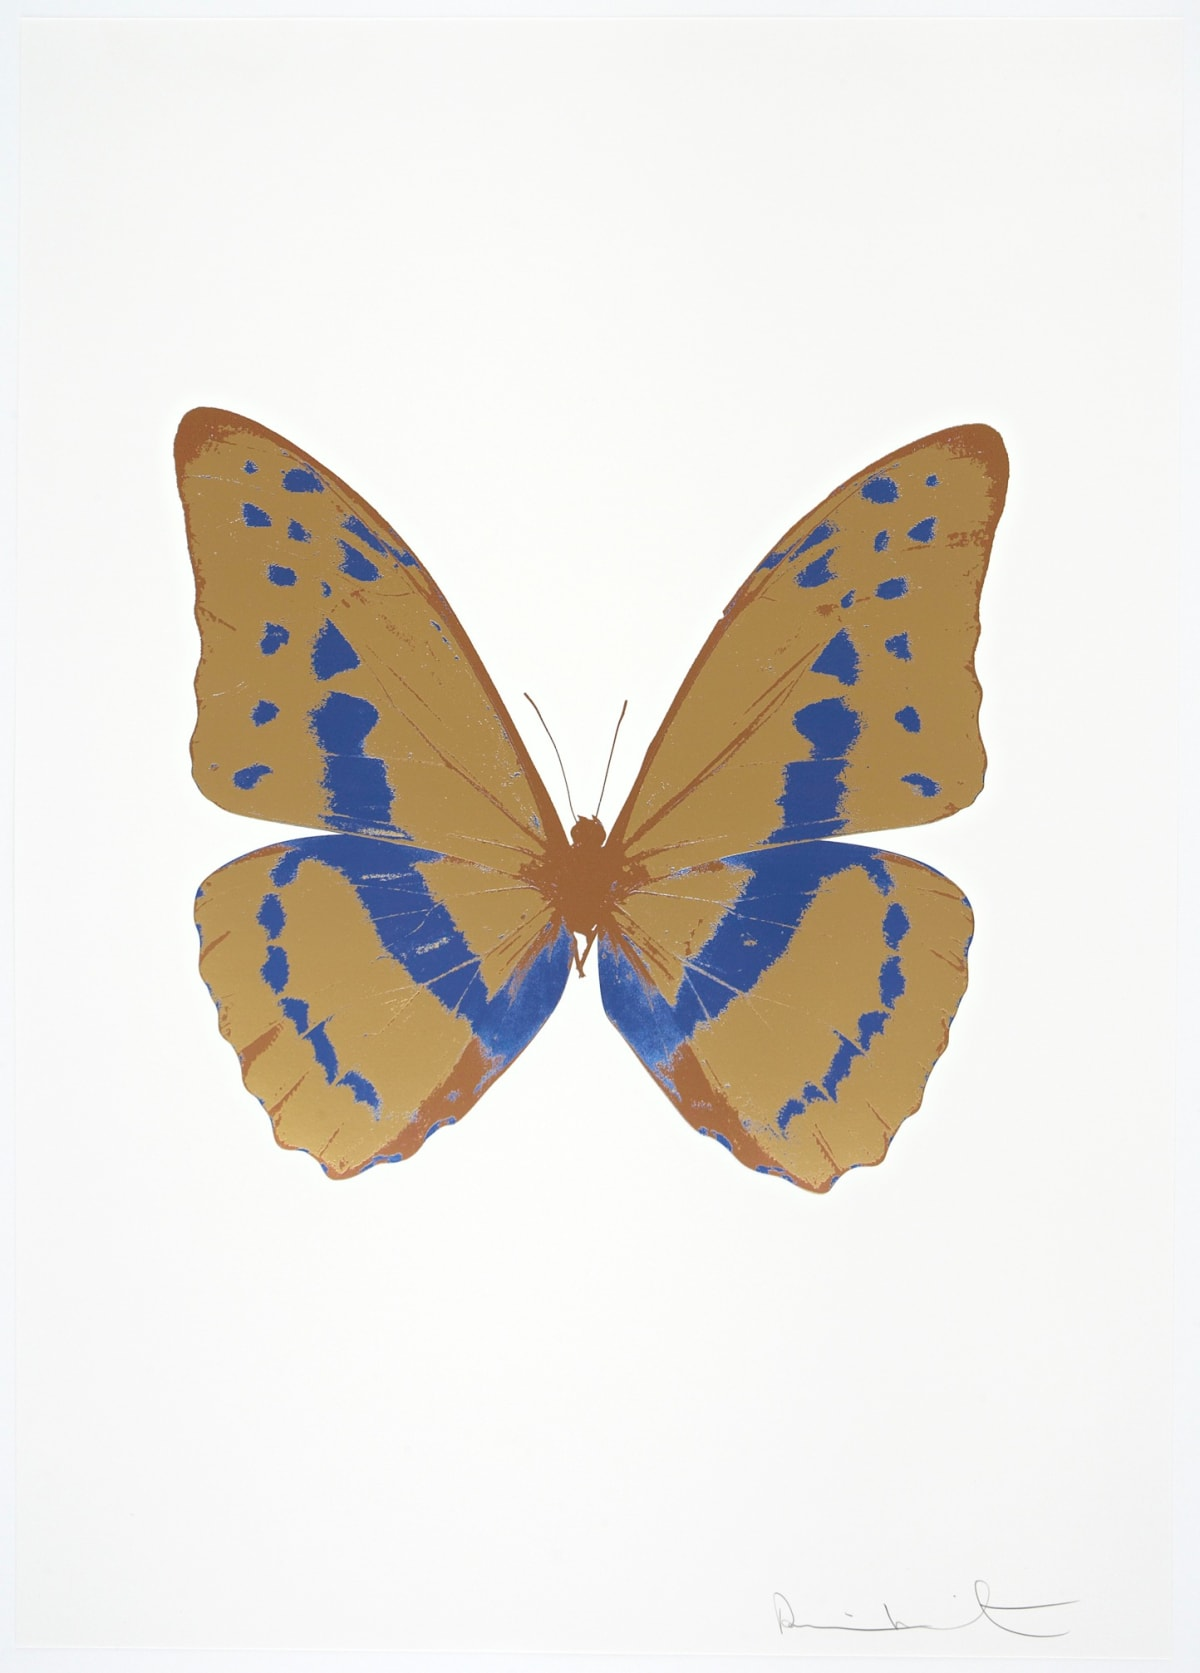 Damien Hirst The Souls III - Hazy Gold/Frost Blue/Rustic Copper, 2010 3 colour foil block on 300gsm Arches 88 archival paper. Signed and numbered. Published by Paul Stolper and Other Criteria 72 x 51cm OC7957 / 660-60 Edition of 15